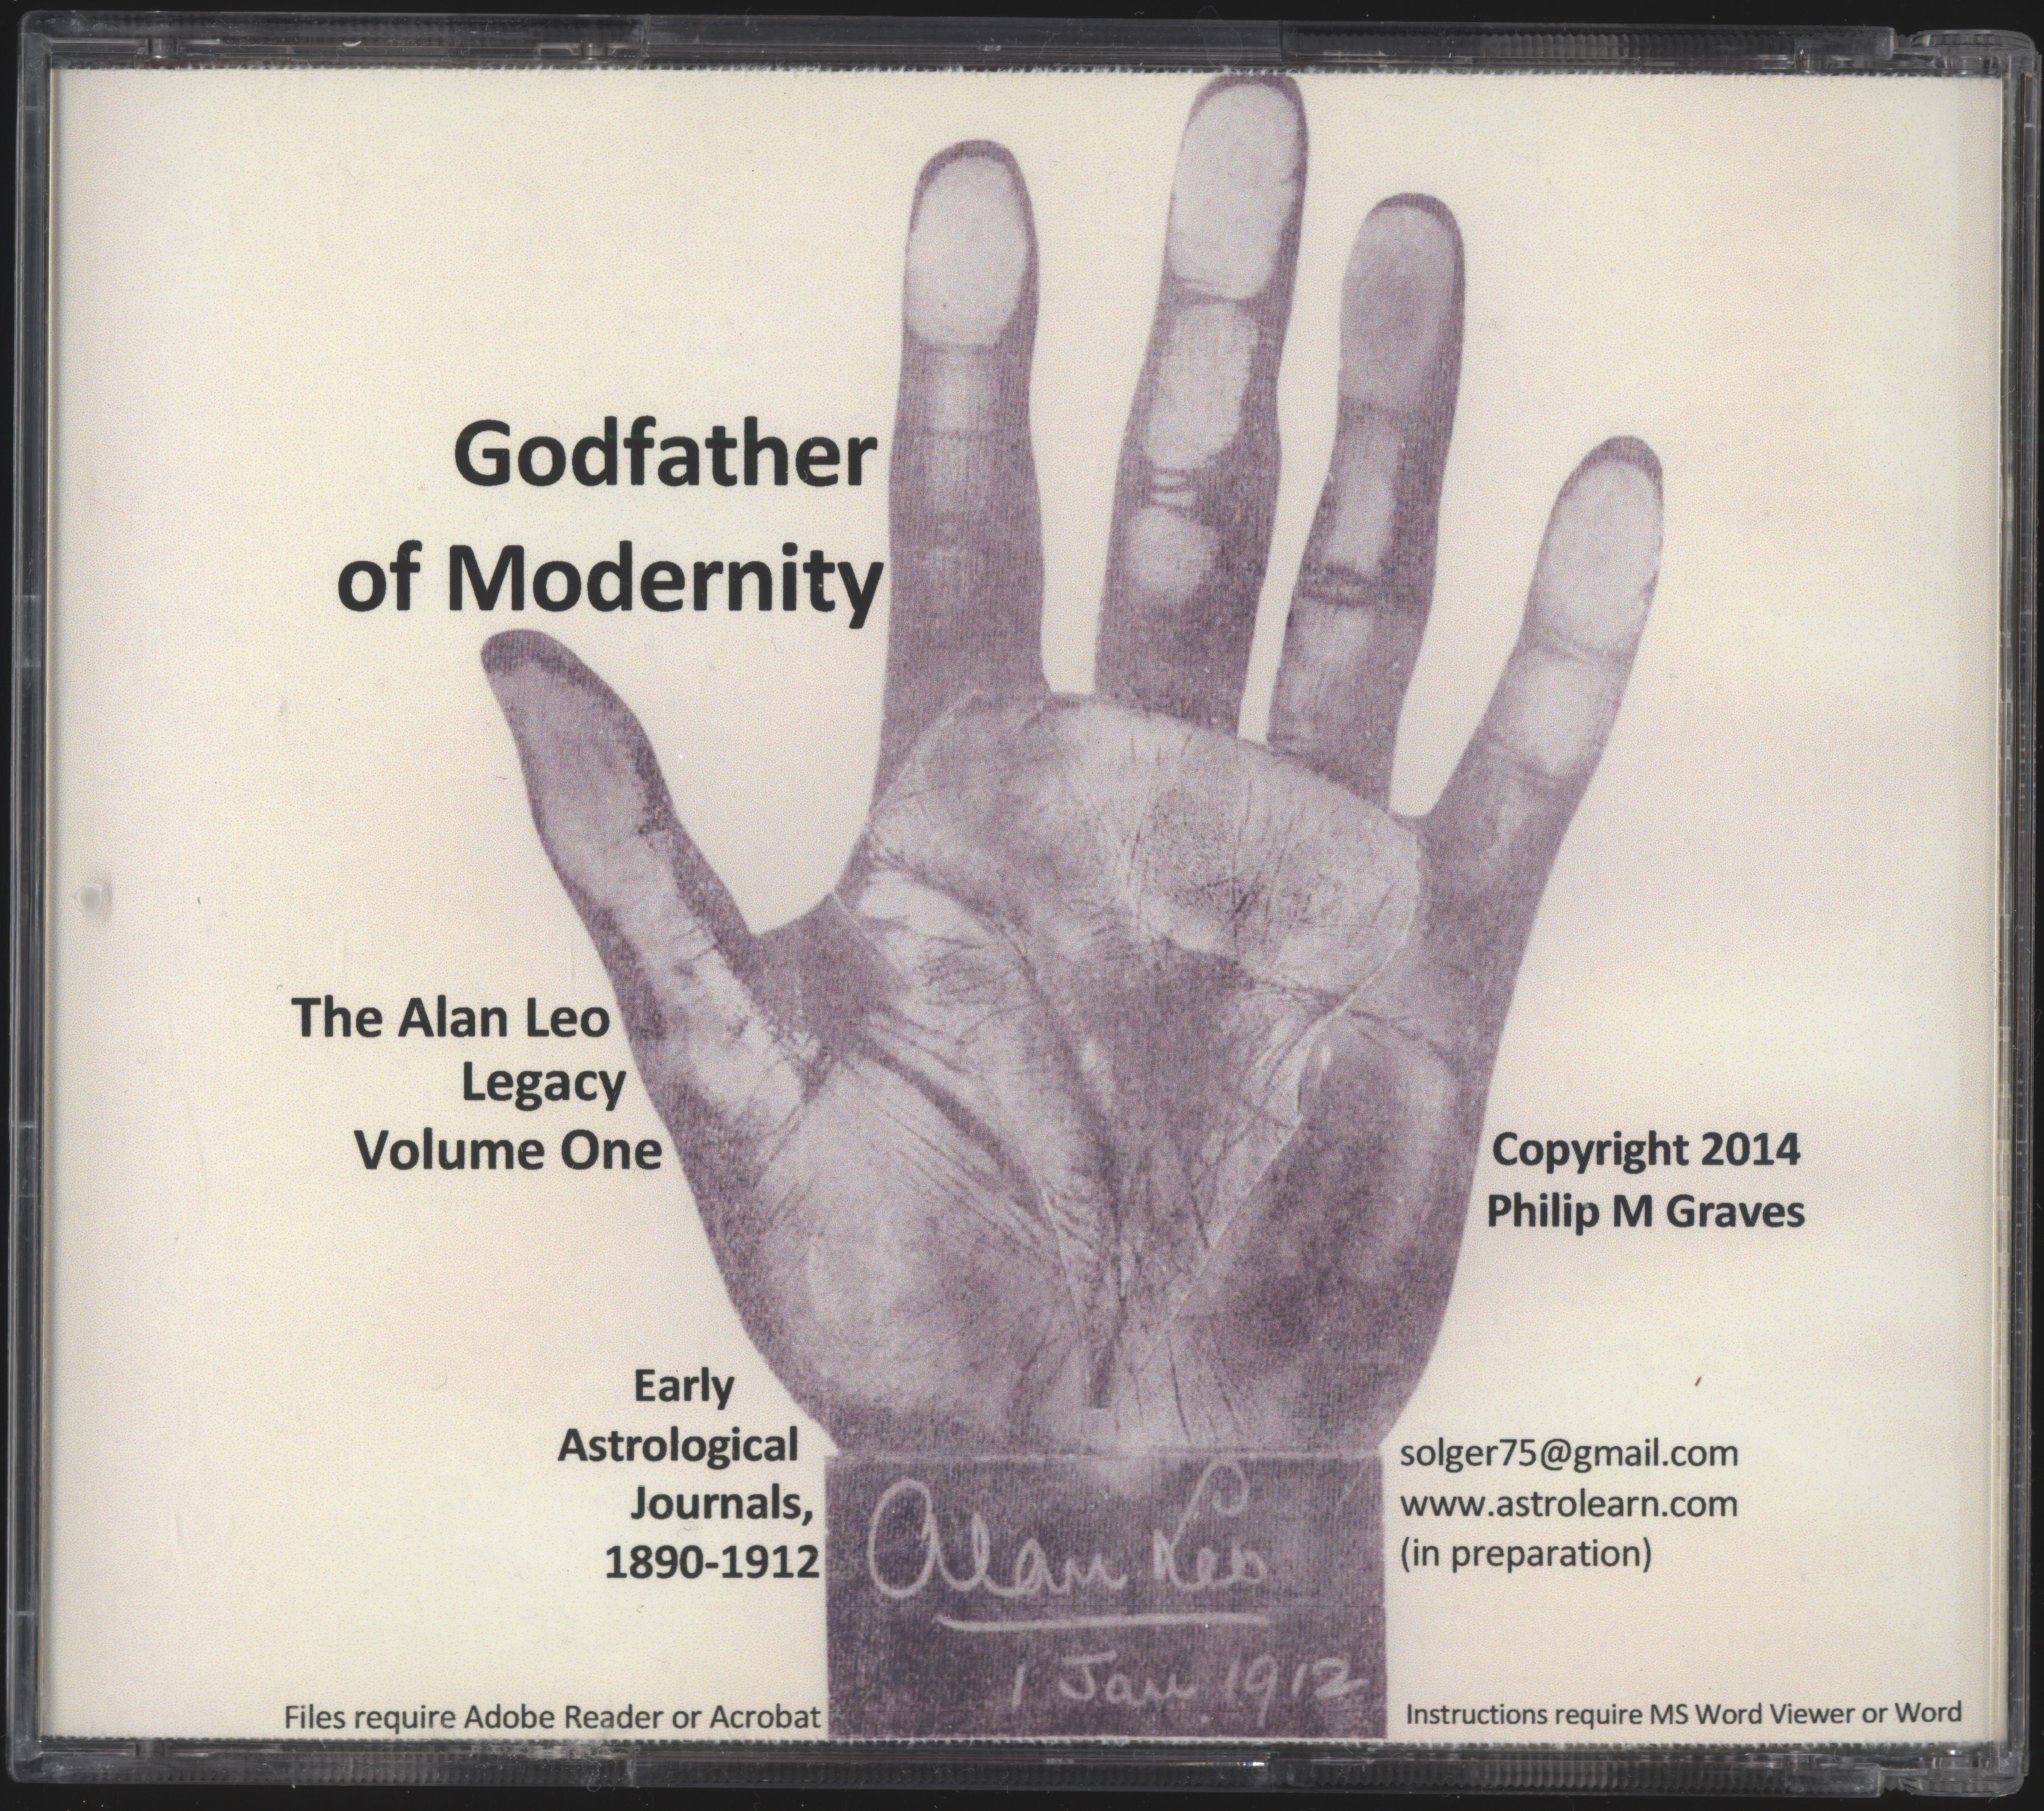 Godfather of Modernity: the Alan Leo Legacy Volume One: Early Astrological Journals, 1890-1912, DVD, Rear Cover